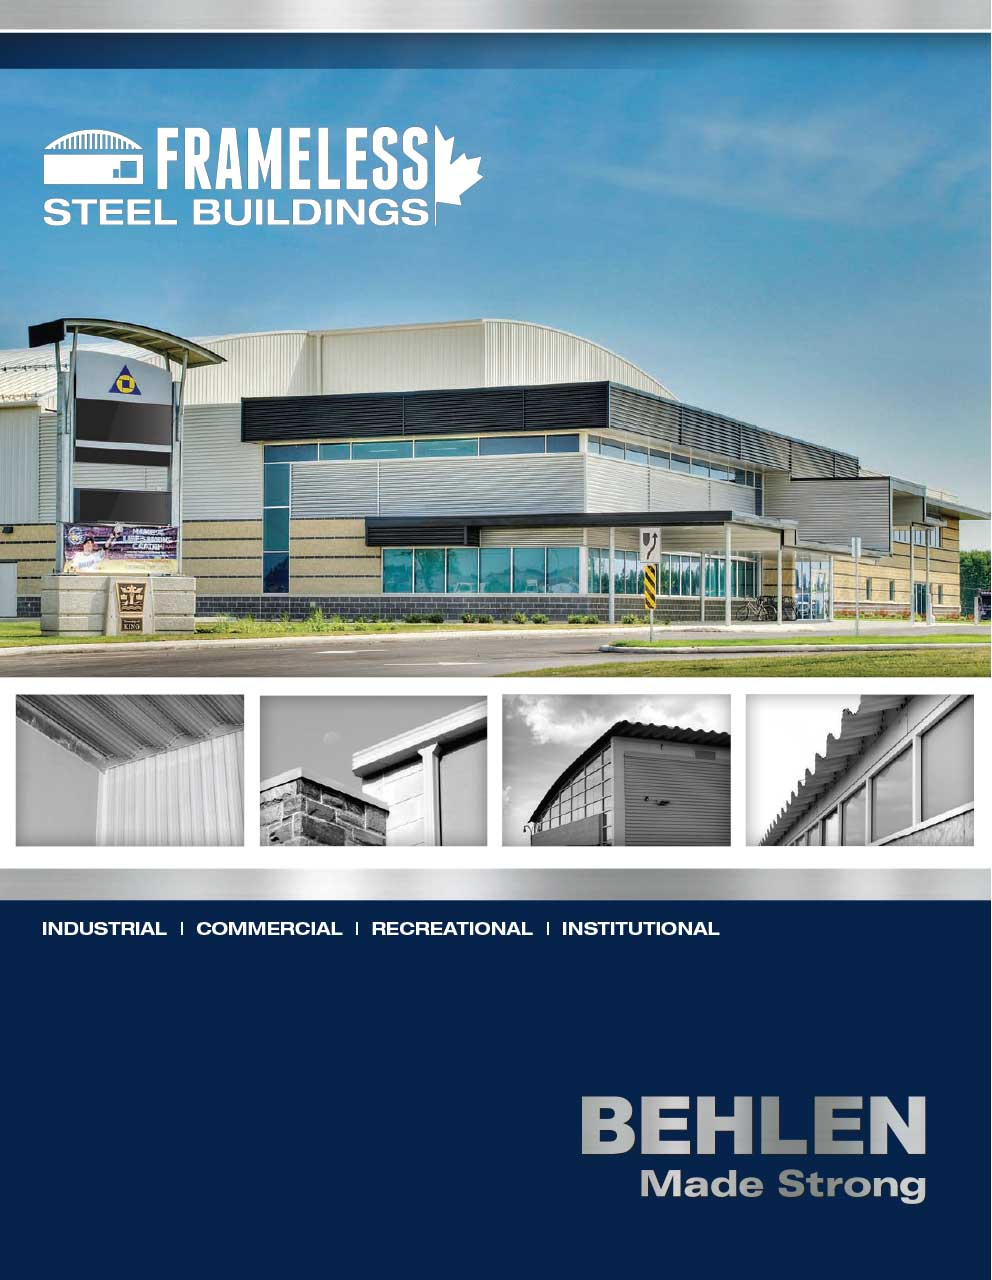 Behlen Industries - Frameless Steel Buildings